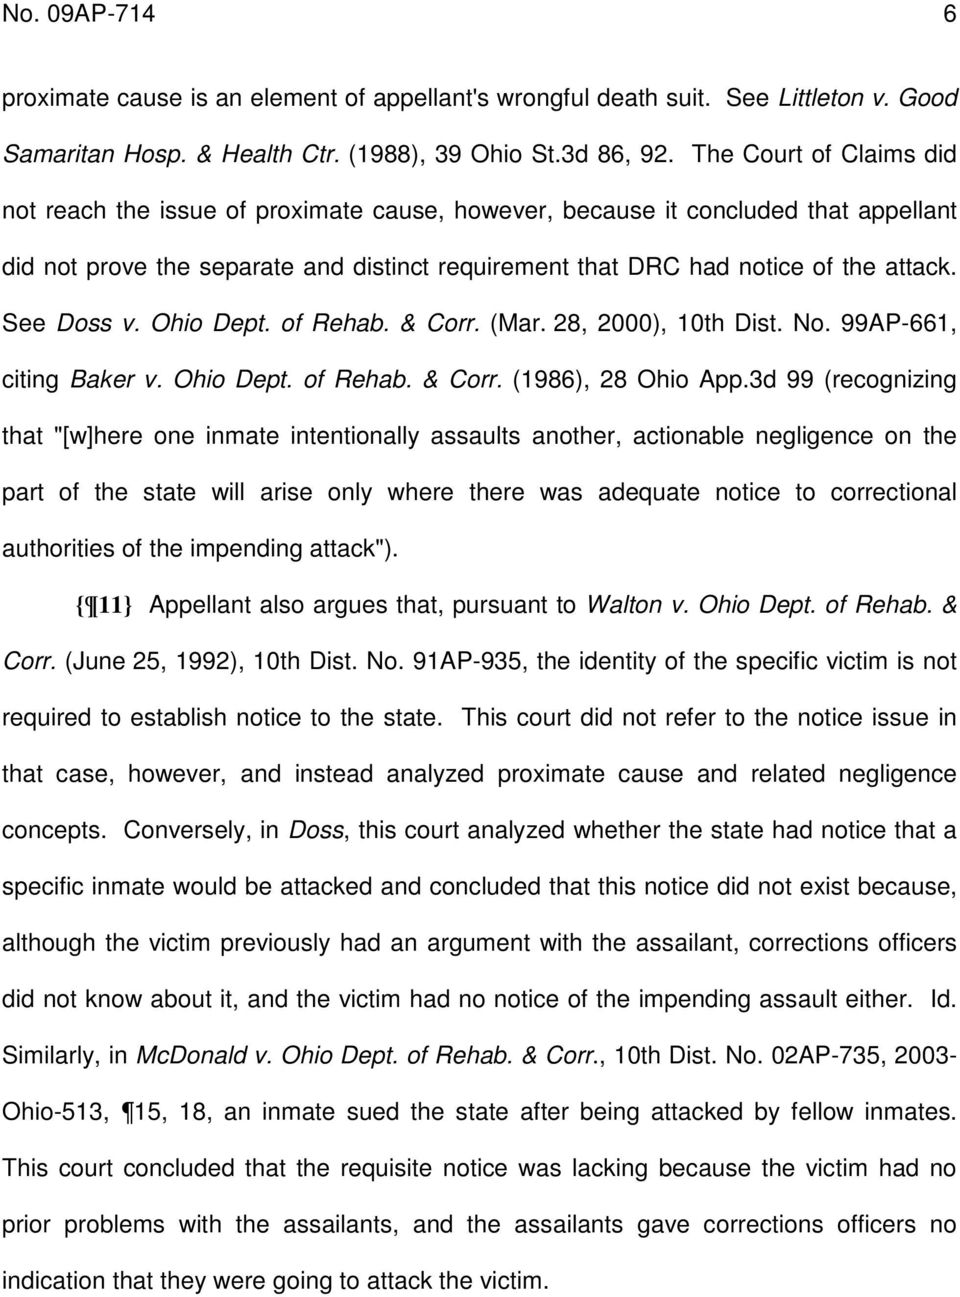 See Doss v. Ohio Dept. of Rehab. & Corr. (Mar. 28, 2000), 10th Dist. No. 99AP-661, citing Baker v. Ohio Dept. of Rehab. & Corr. (1986), 28 Ohio App.